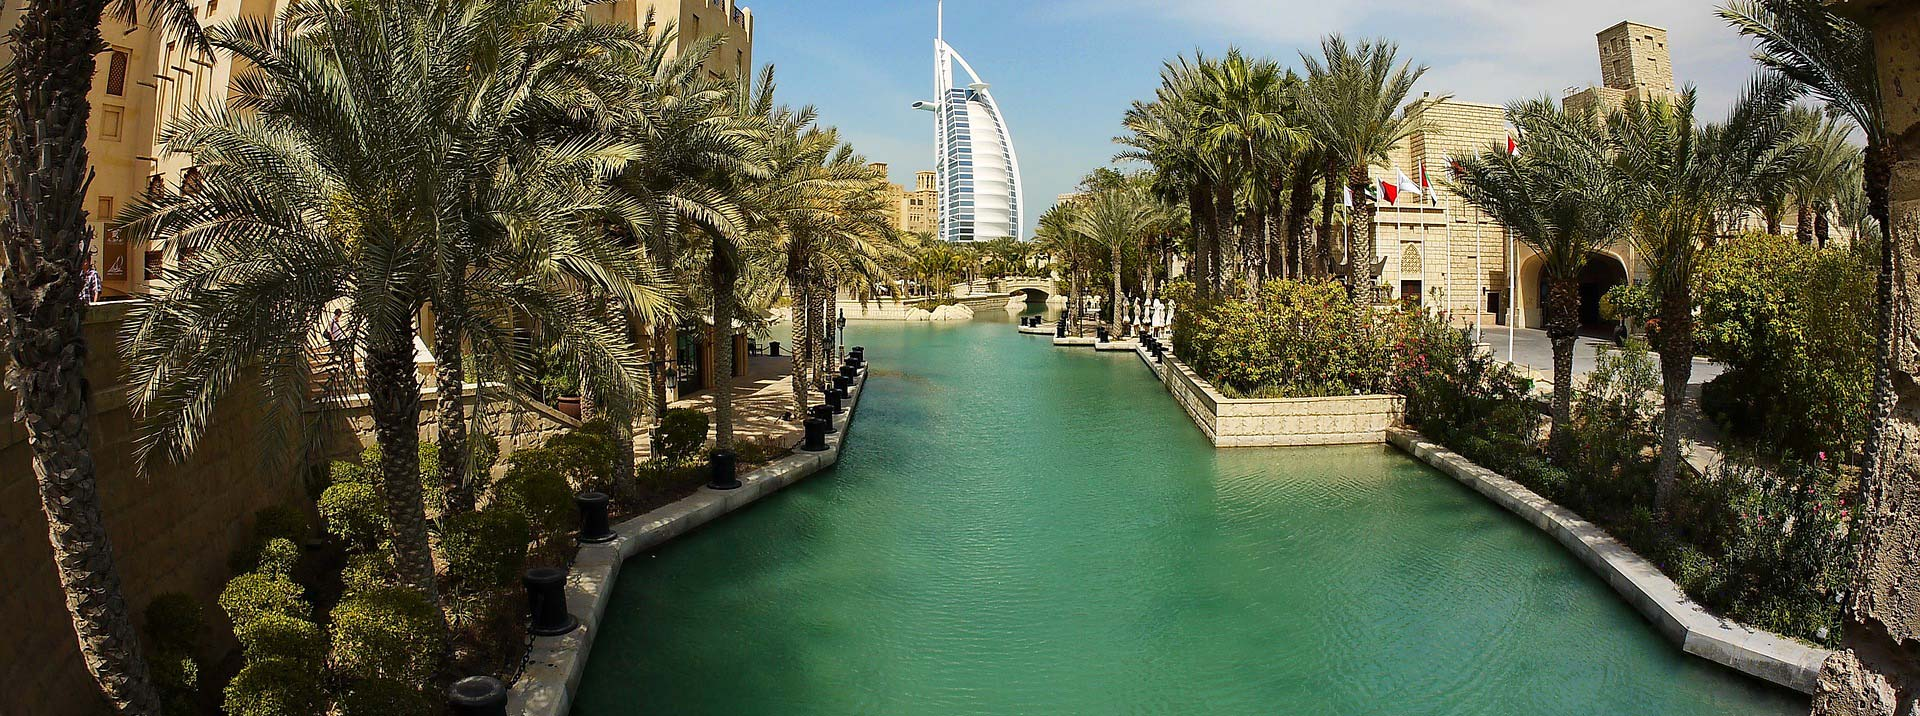 Discounted flight tickets from Los Angeles to Dubai - IFlyFirstClass